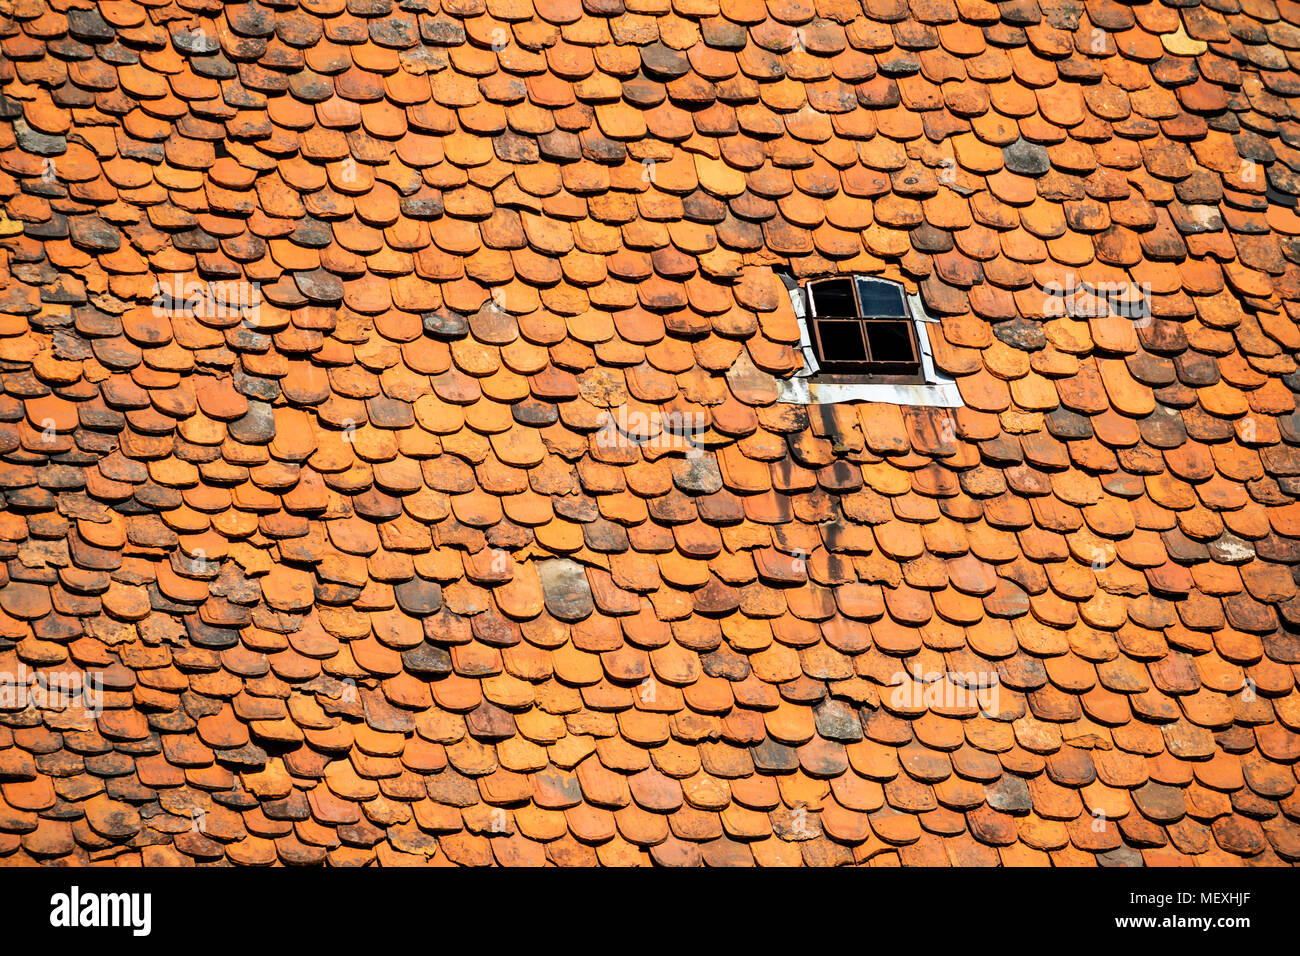 housetop with historic beaver-tail roofing tiles in Büdingen, Hesse, Germany, Europe - Stock Image